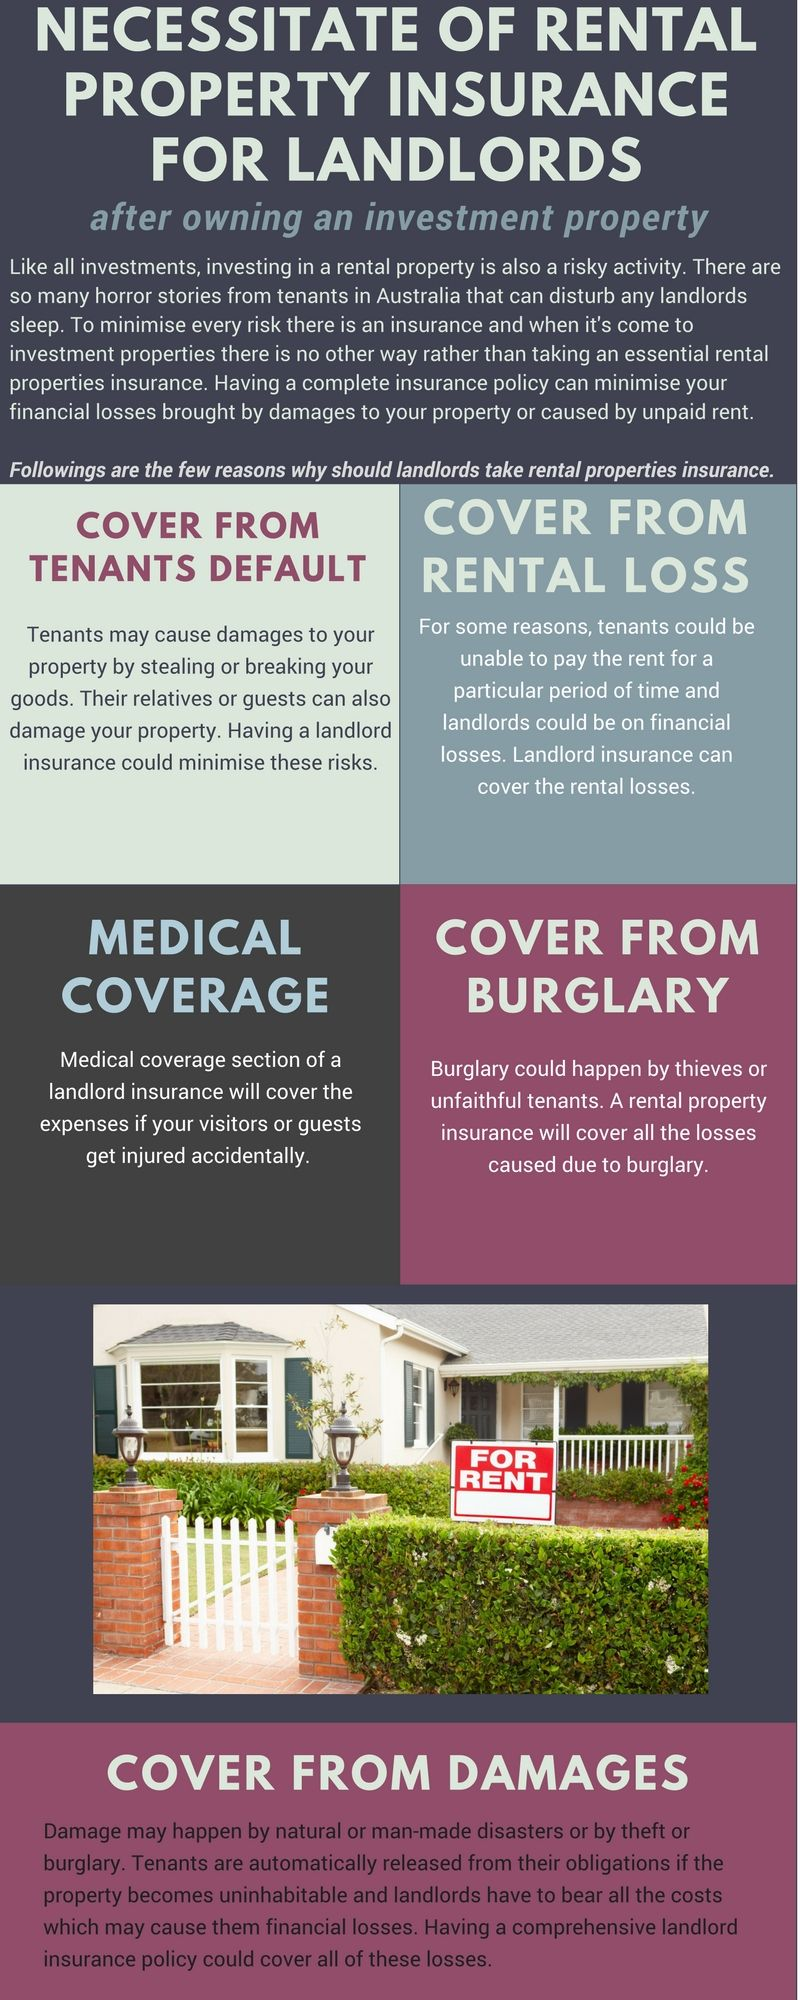 Pin by SGUA Insurance on Landlord Insurance Landlord